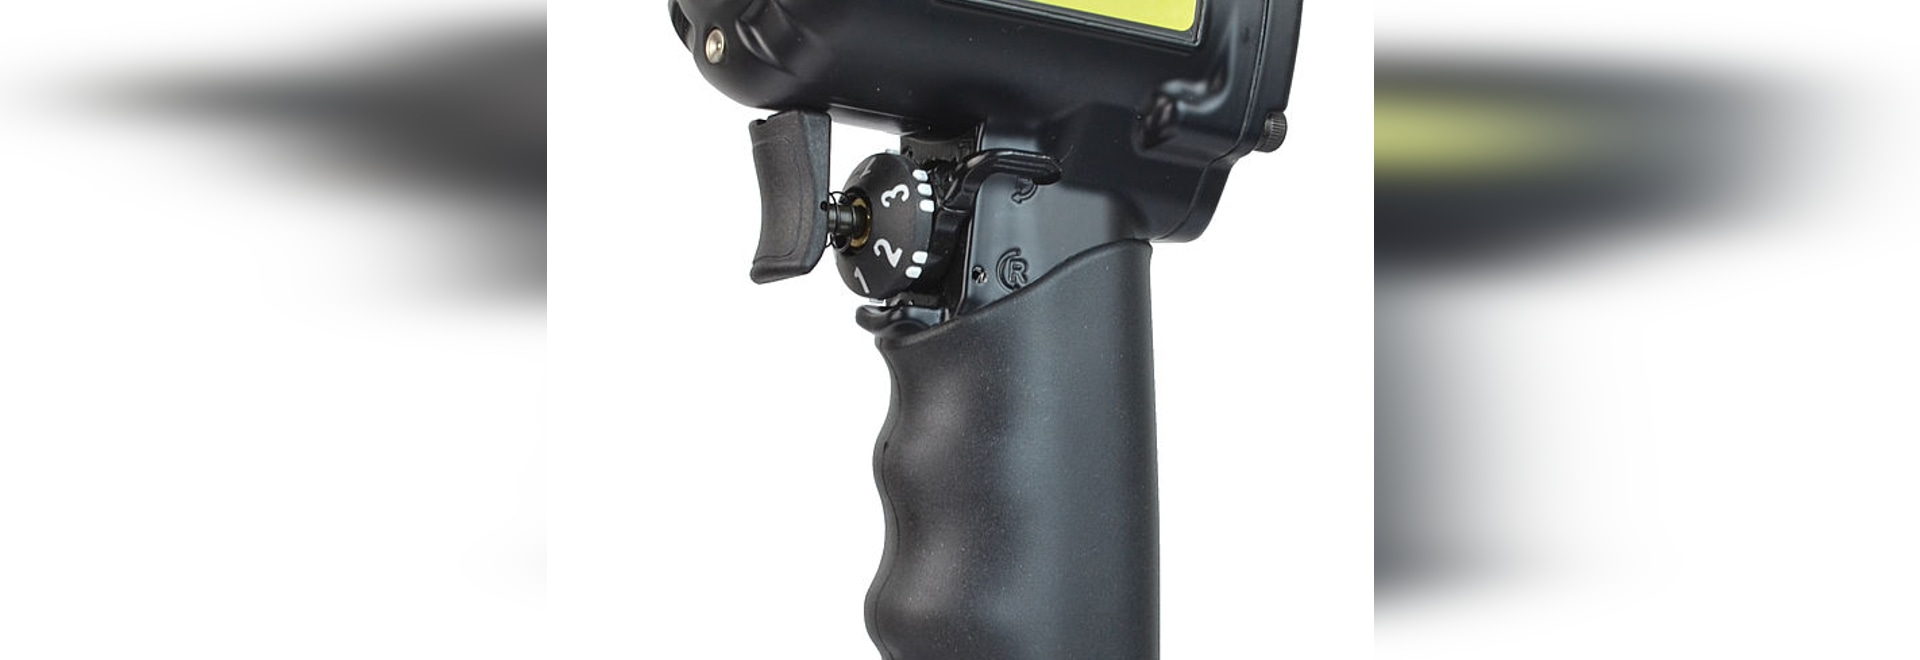 DP1050, THE ULTRA COMPACT IMPACT WRENCH!